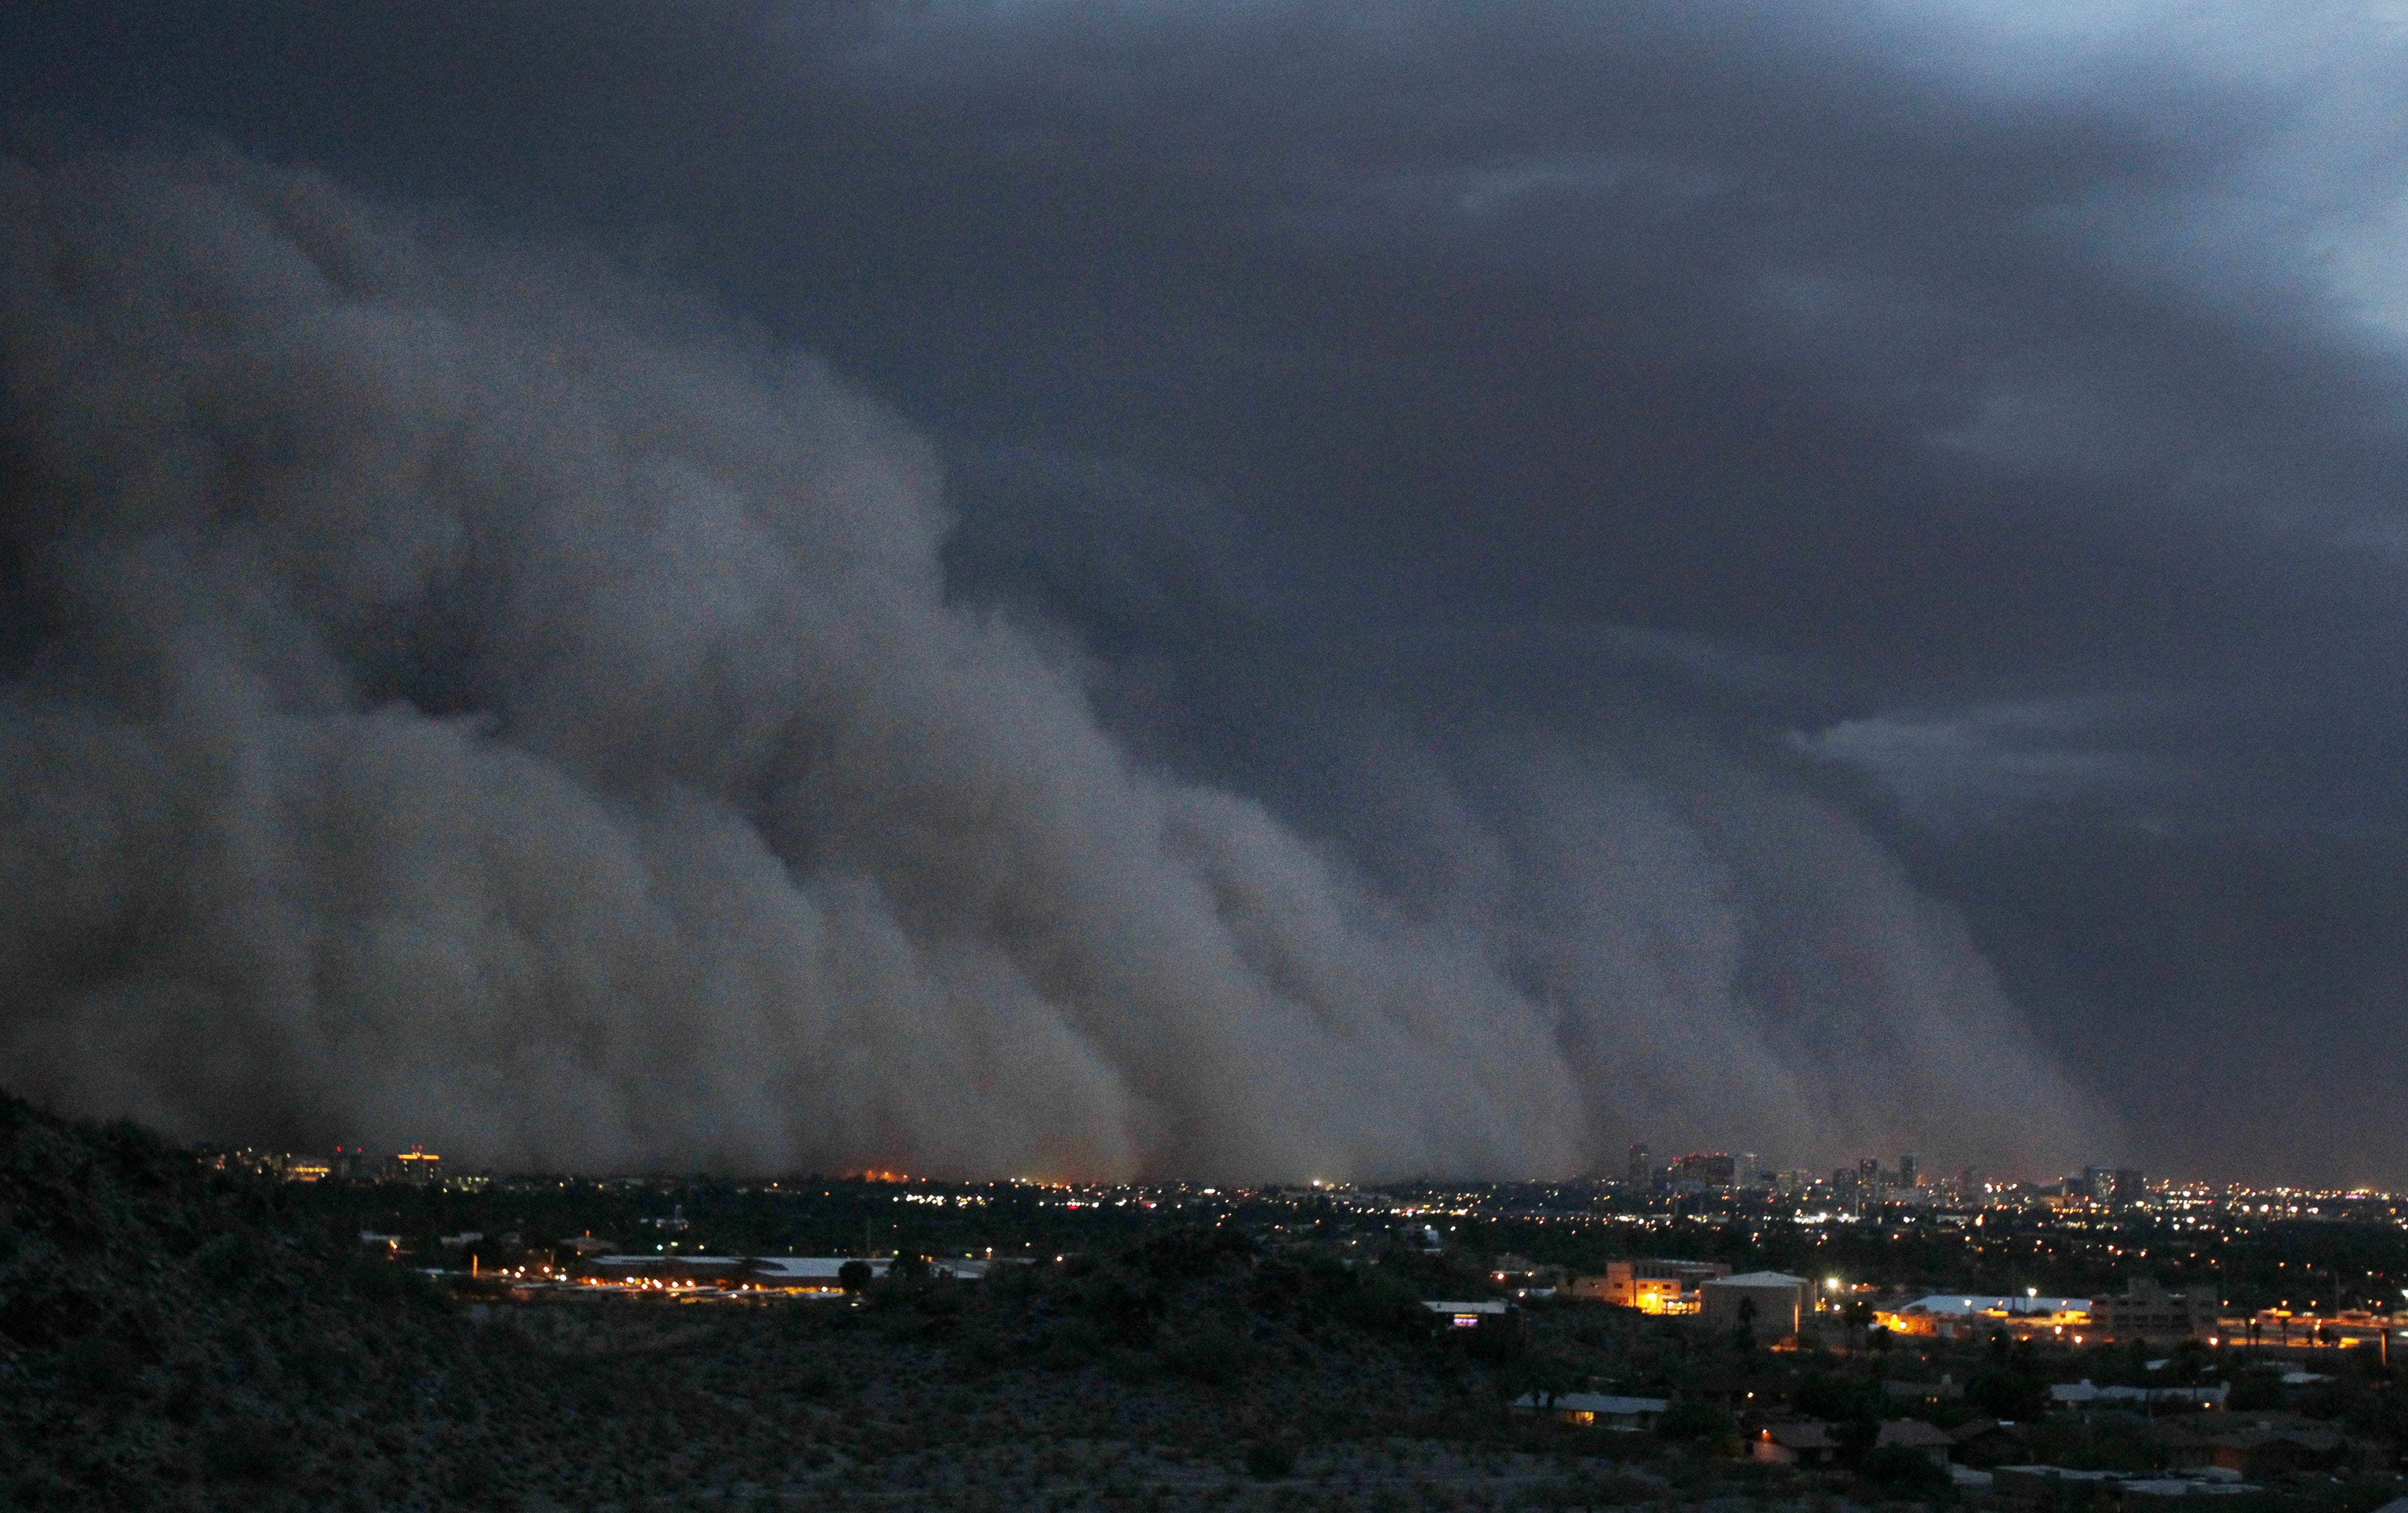 Summer storms are a spectacle, but the dust in them is hazardous to your health